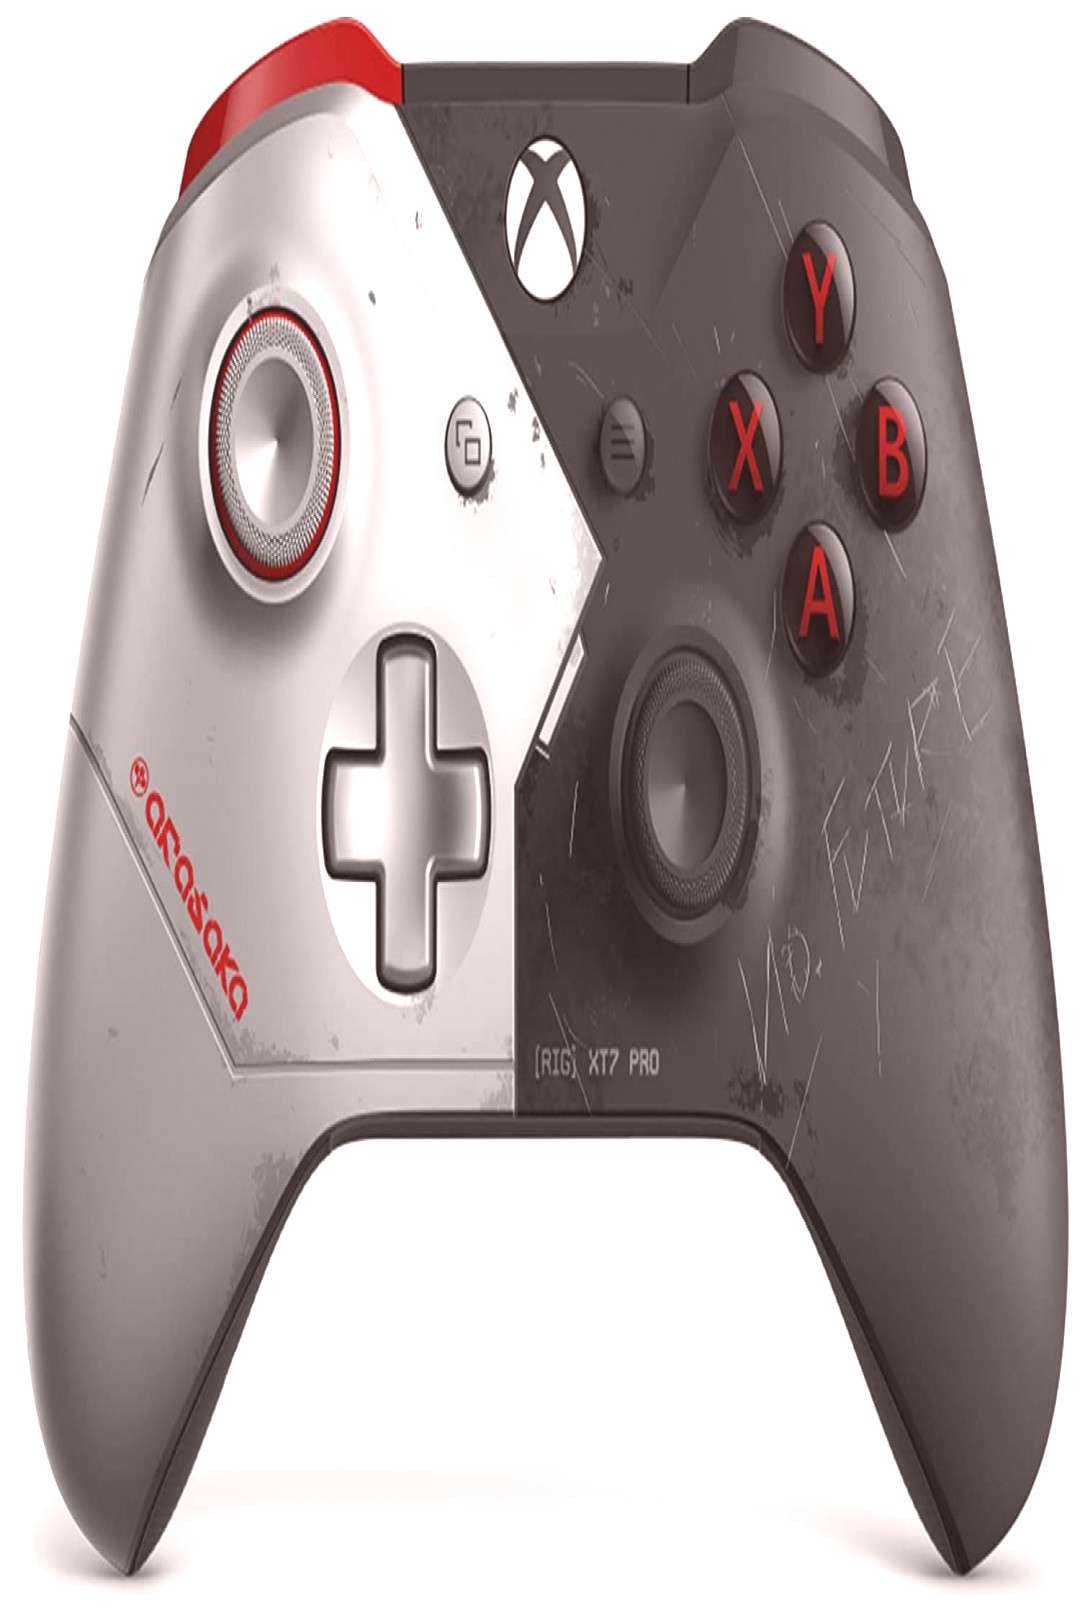 New Limited Edition Xbox Controller For Cyberpunk 2077 Shows Up On Amazon That Has A SIlverhand-Ins